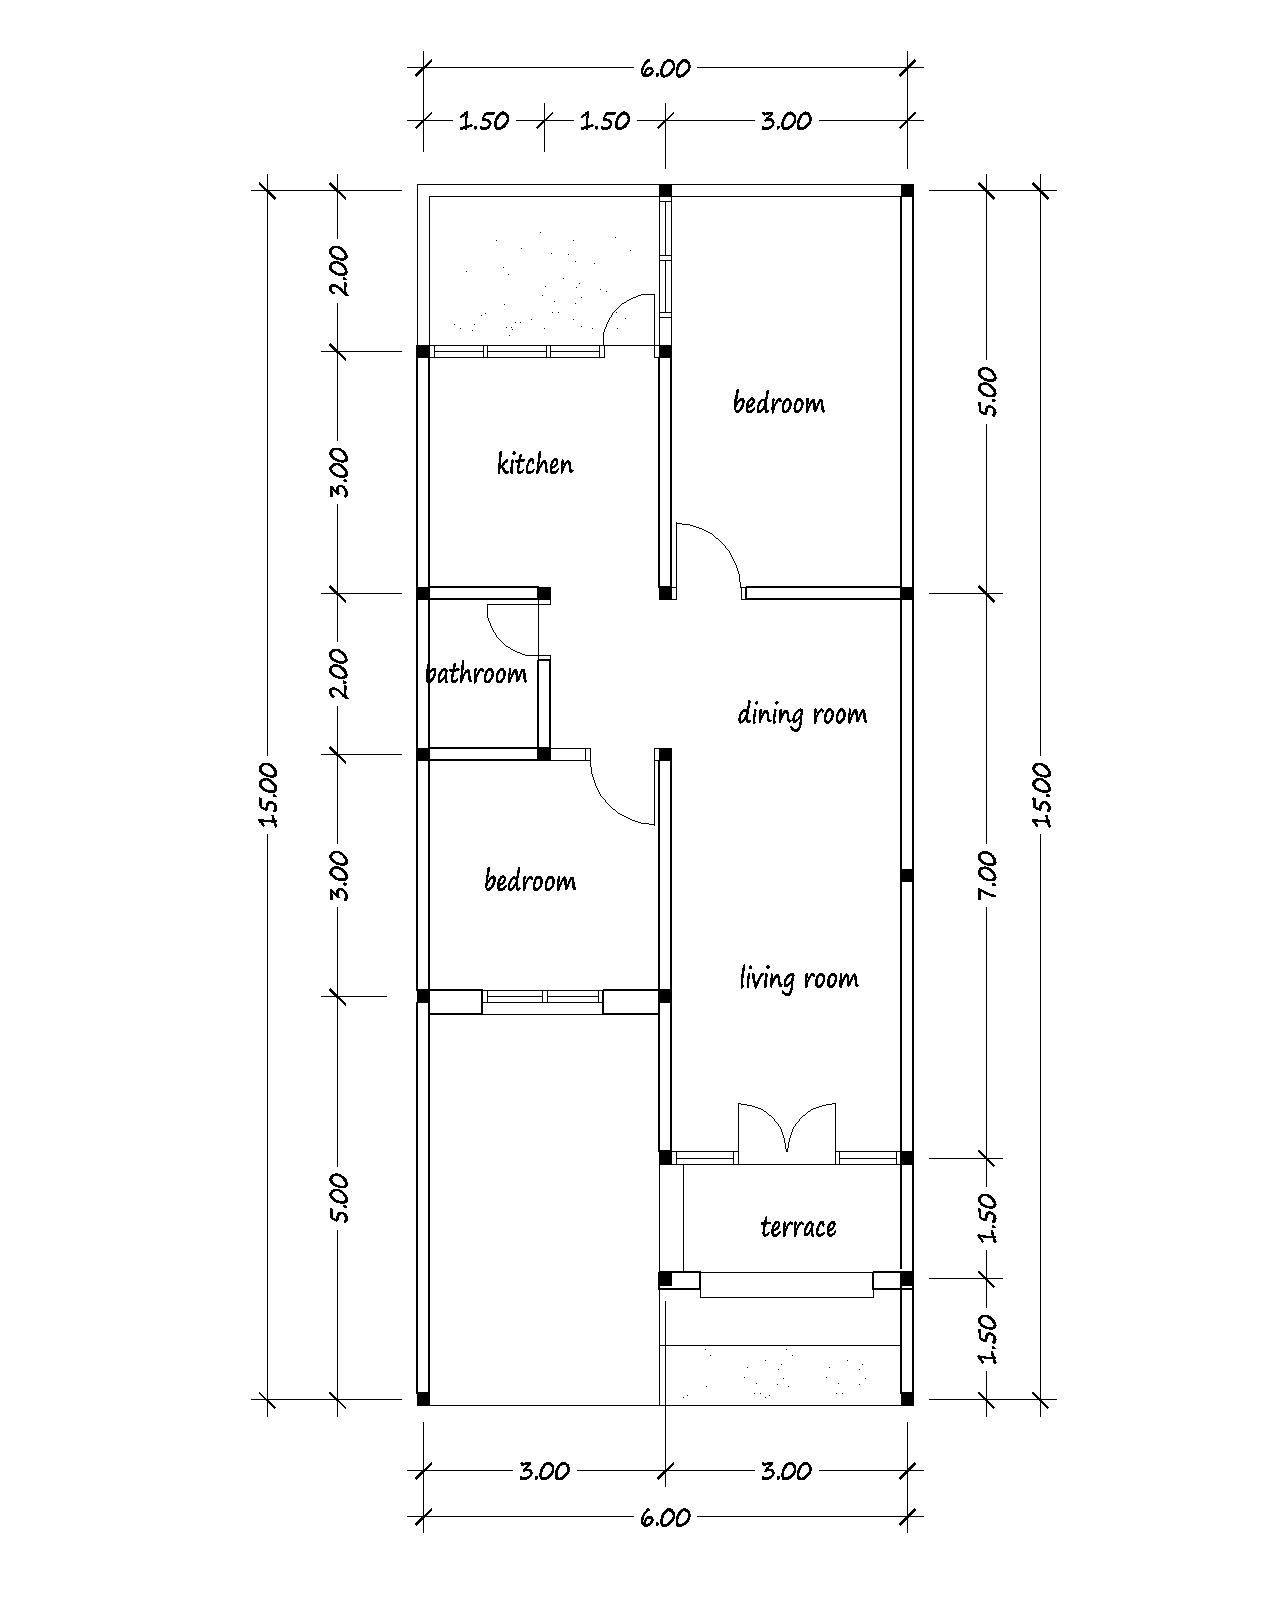 Blog About The Houses Buildings Furniture And Architecture Drawing House Plans Bungalow Style House Plans Model House Plan